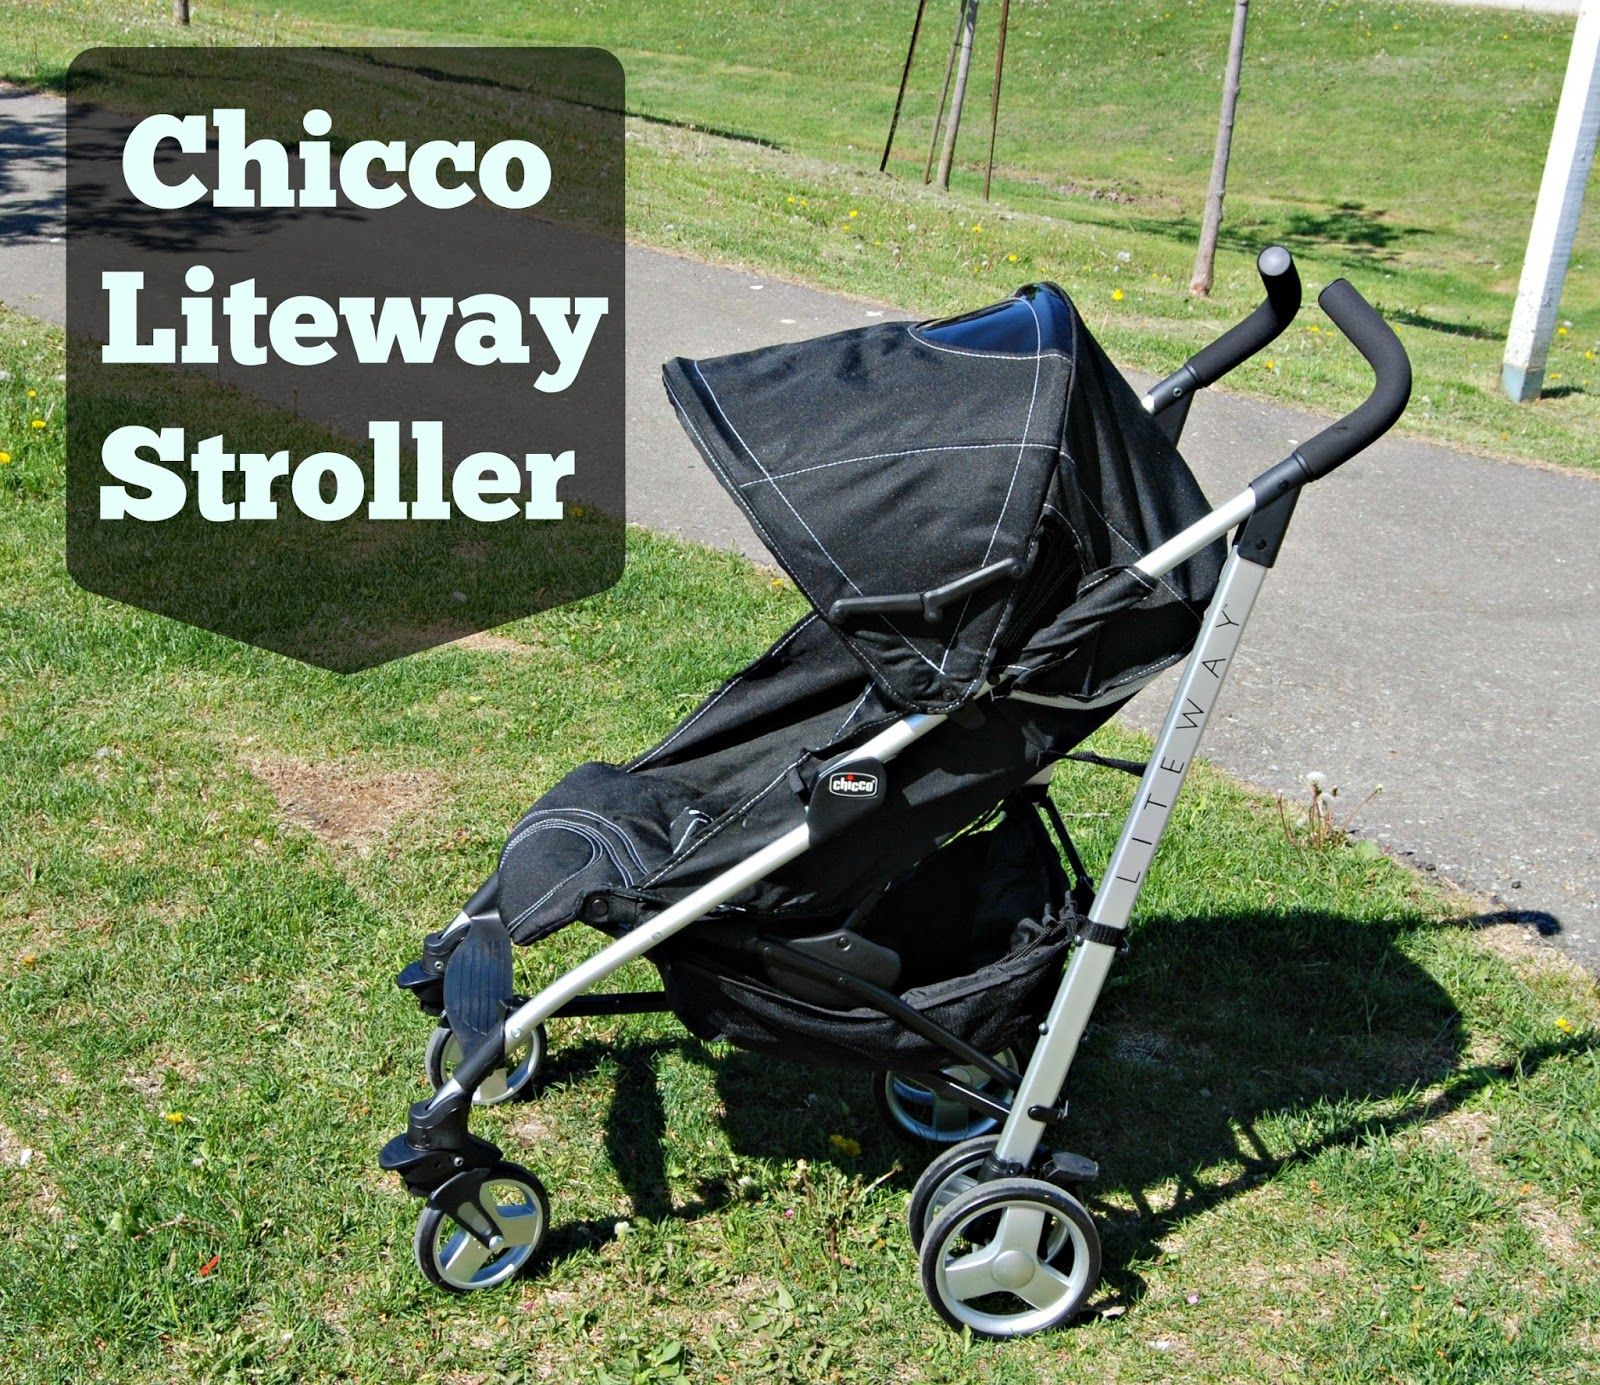 Naturally Cracked The Chicco Liteway Stroller Makes Being